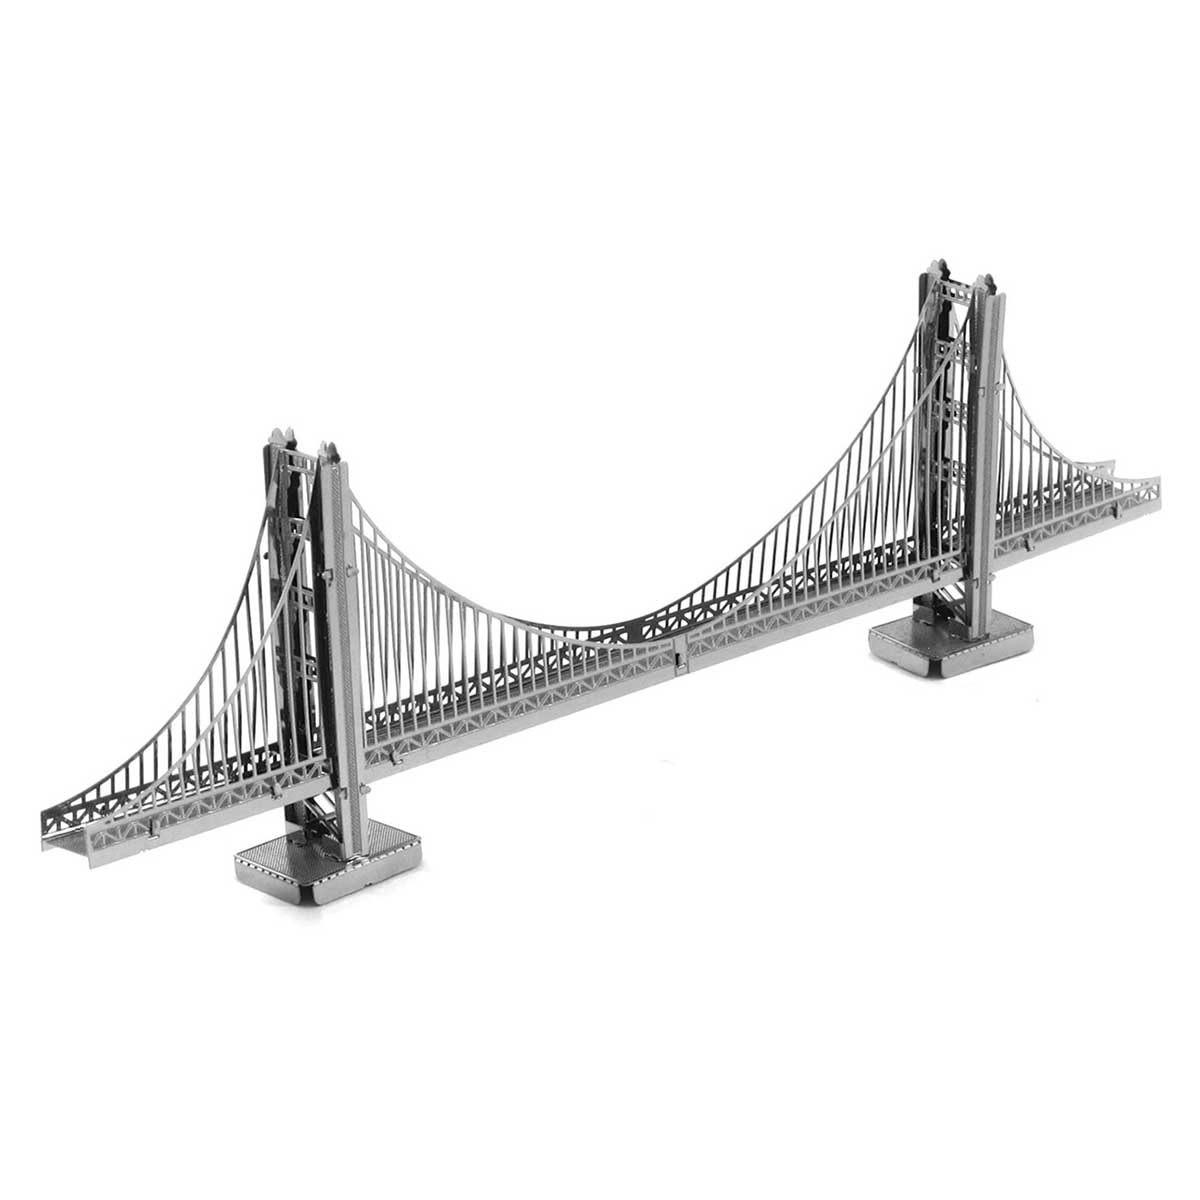 Golden Gate Bridge San Francisco Metal Puzzles